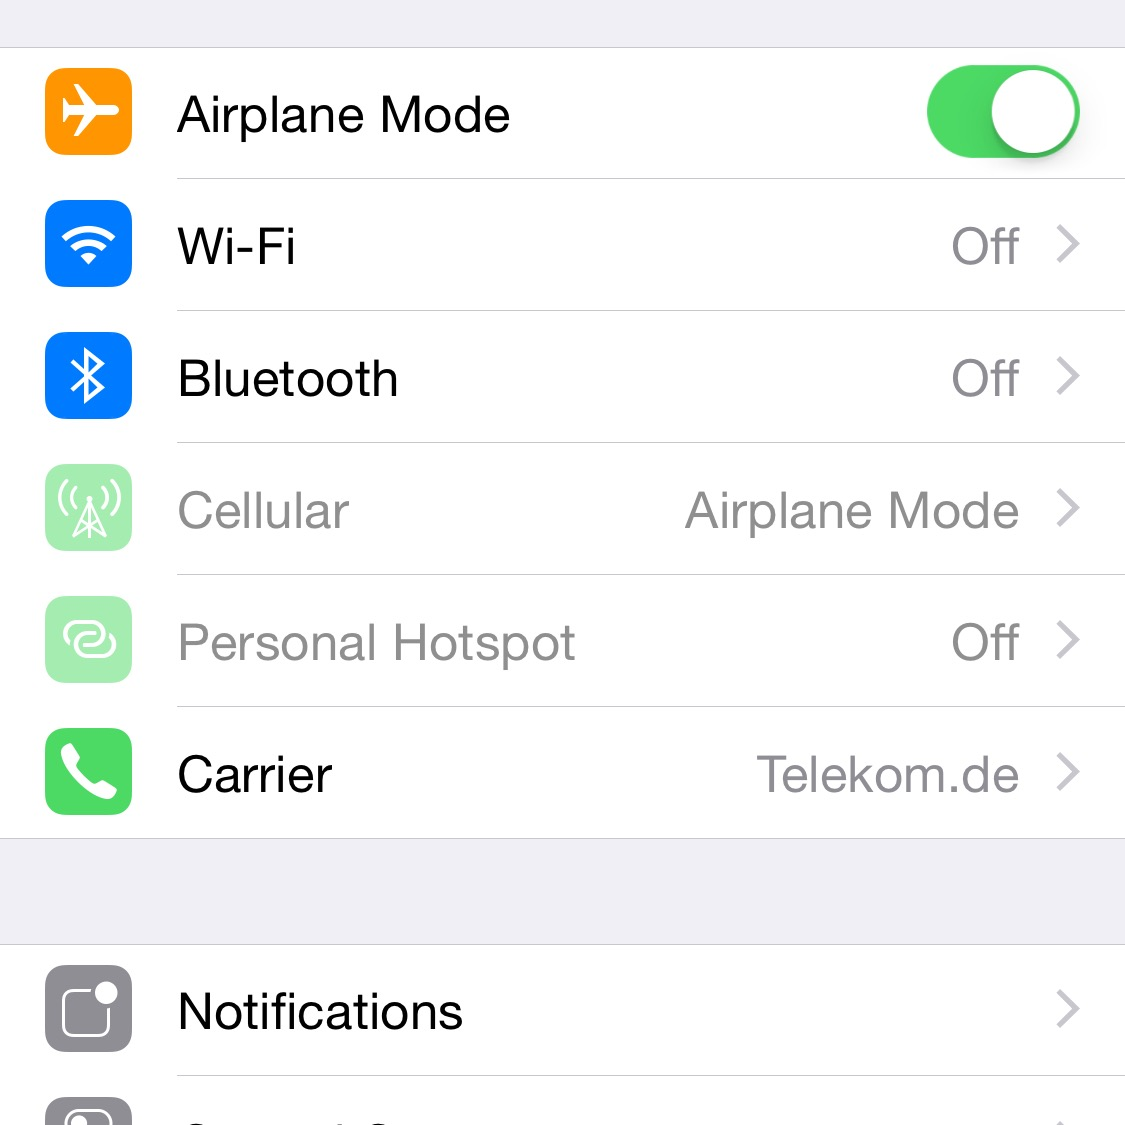 Turning Airplane Mode on disconnects cellular, Wi-Fi and Bluetooth connections.